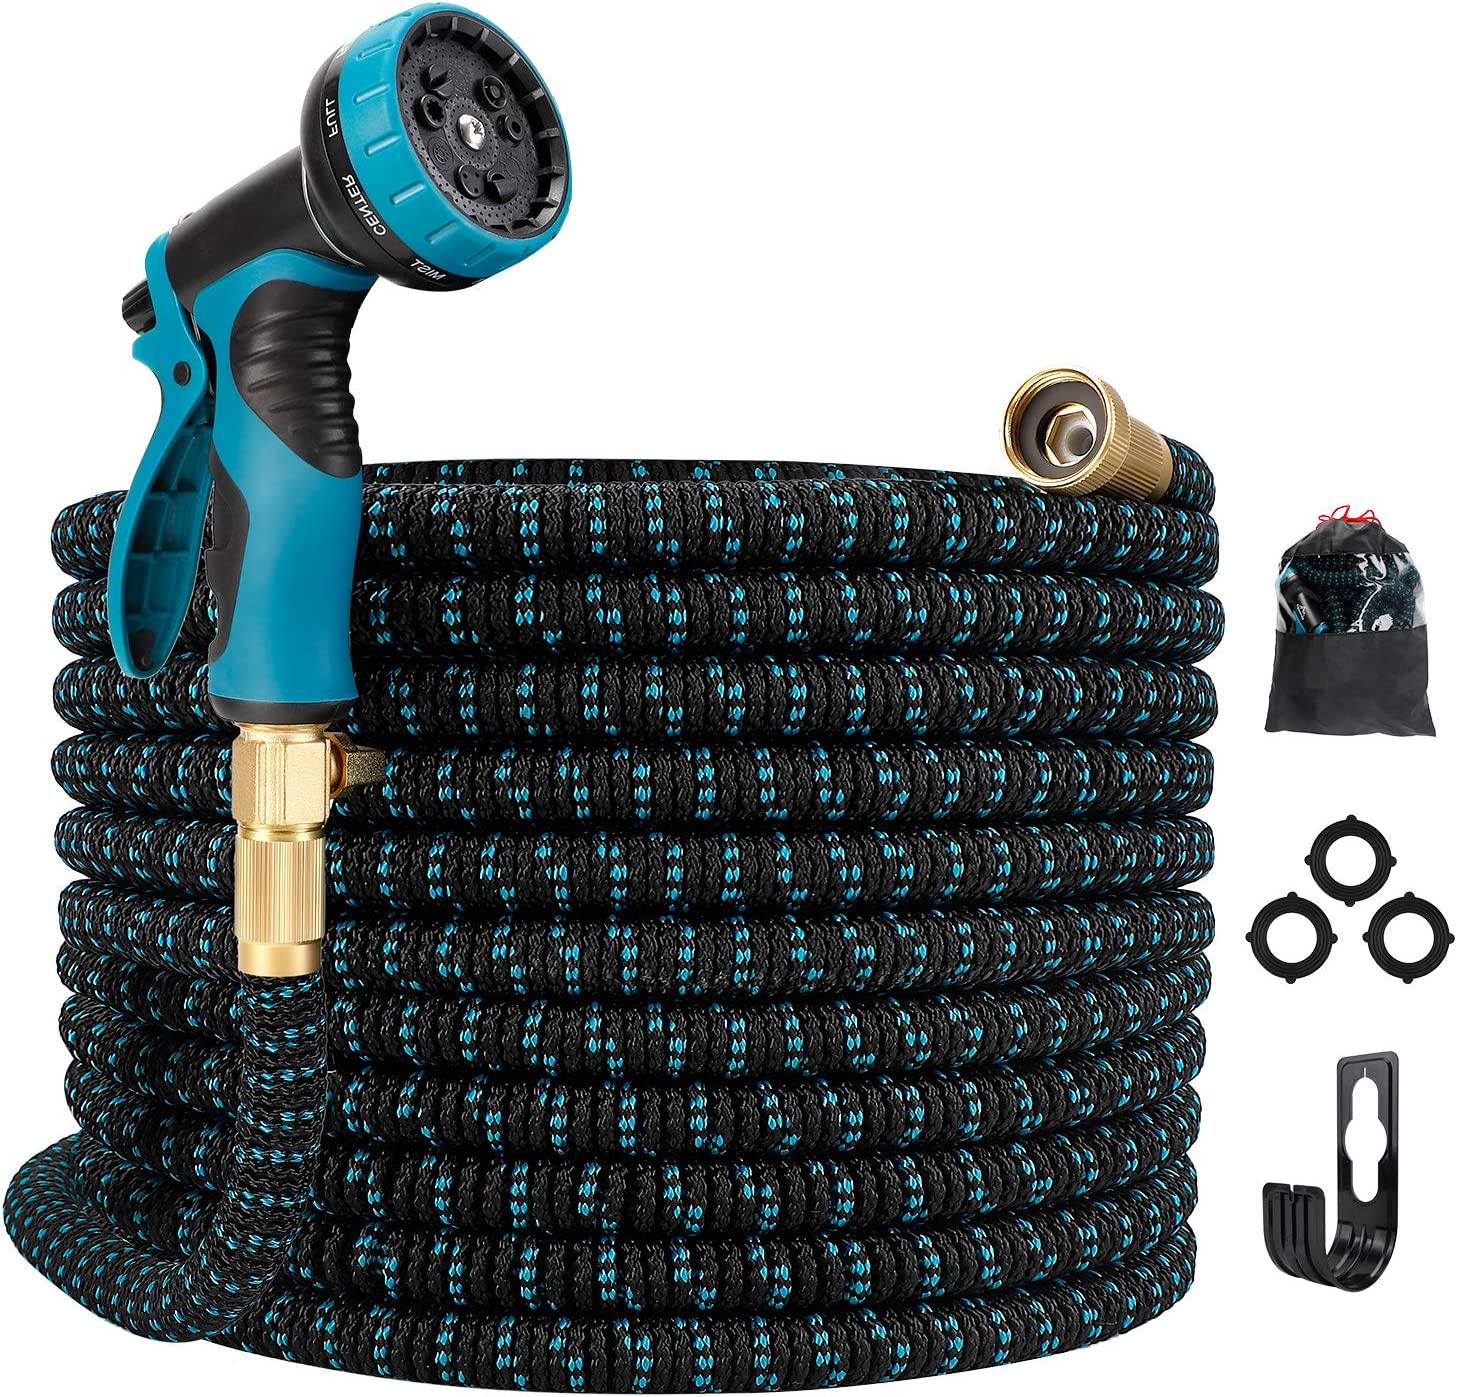 "Gpeng Expandable Garden Hose, Water Collapsible Hose with 9 Function Spray Nozzle, Durable 3-Layers Latex Core with 3/4"" Solid Brass Fittings, Lightweight Expanding Flexible Hose(25 ft)"